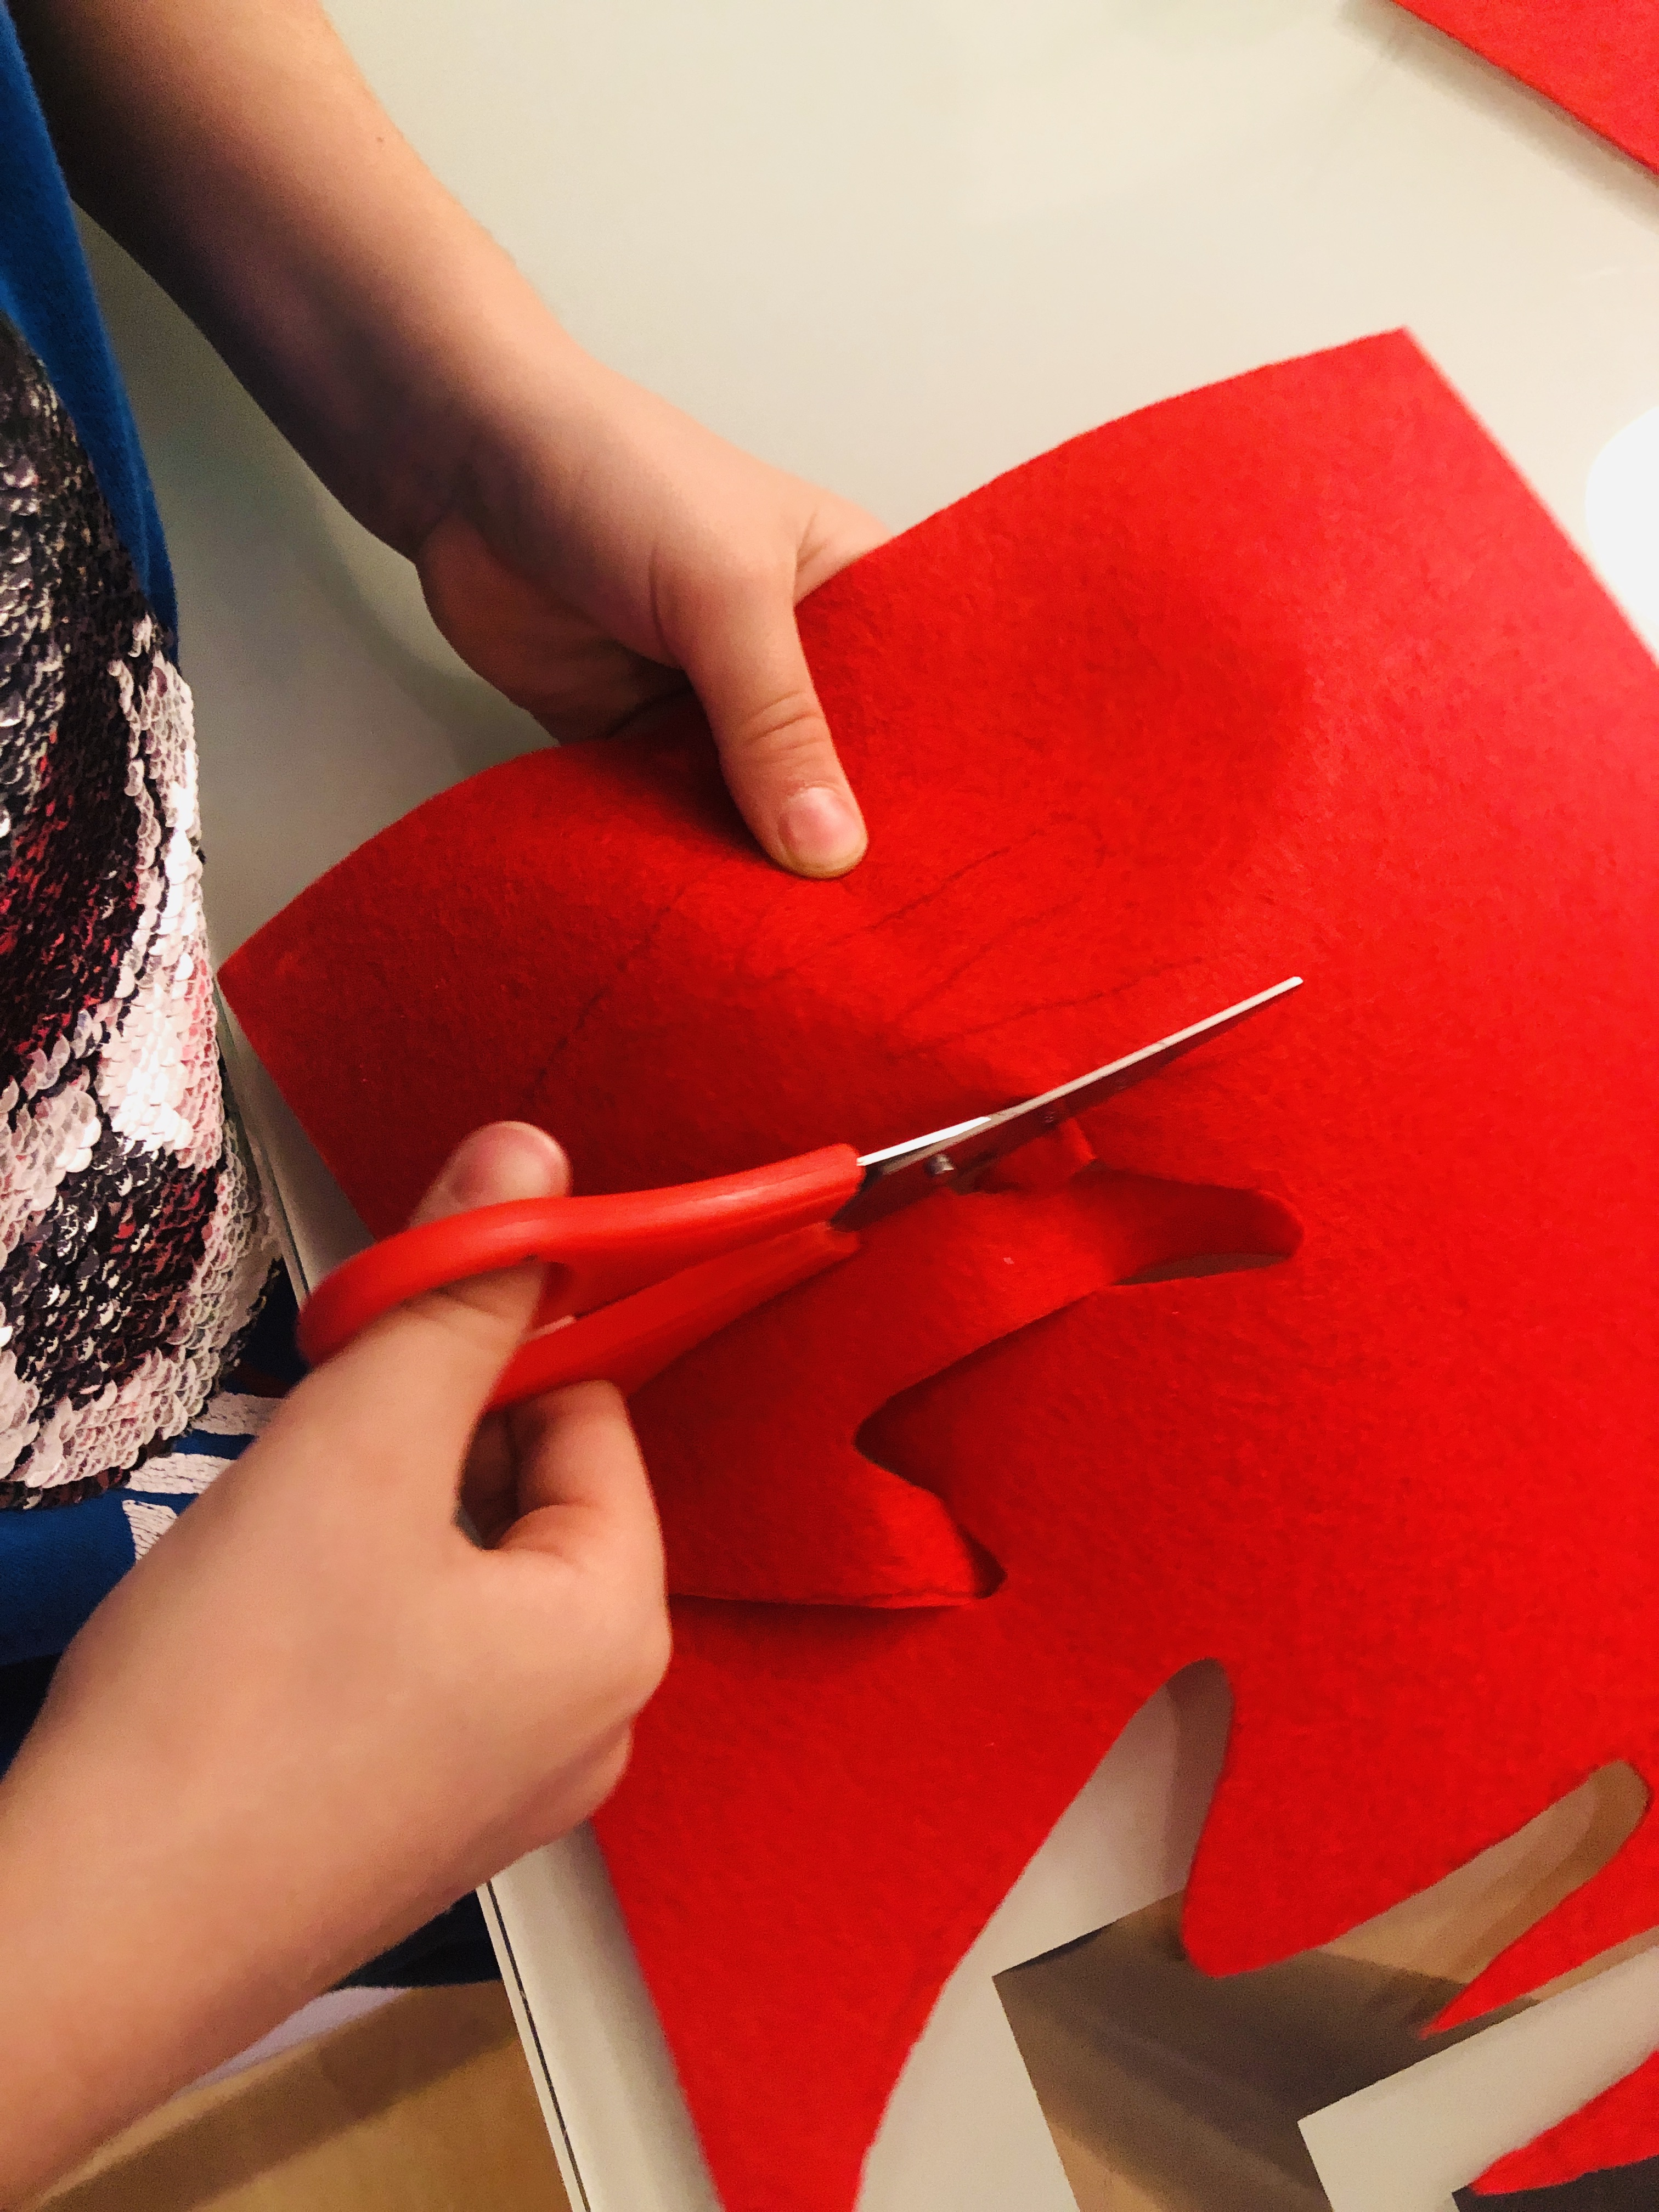 cutting hands out of felt material